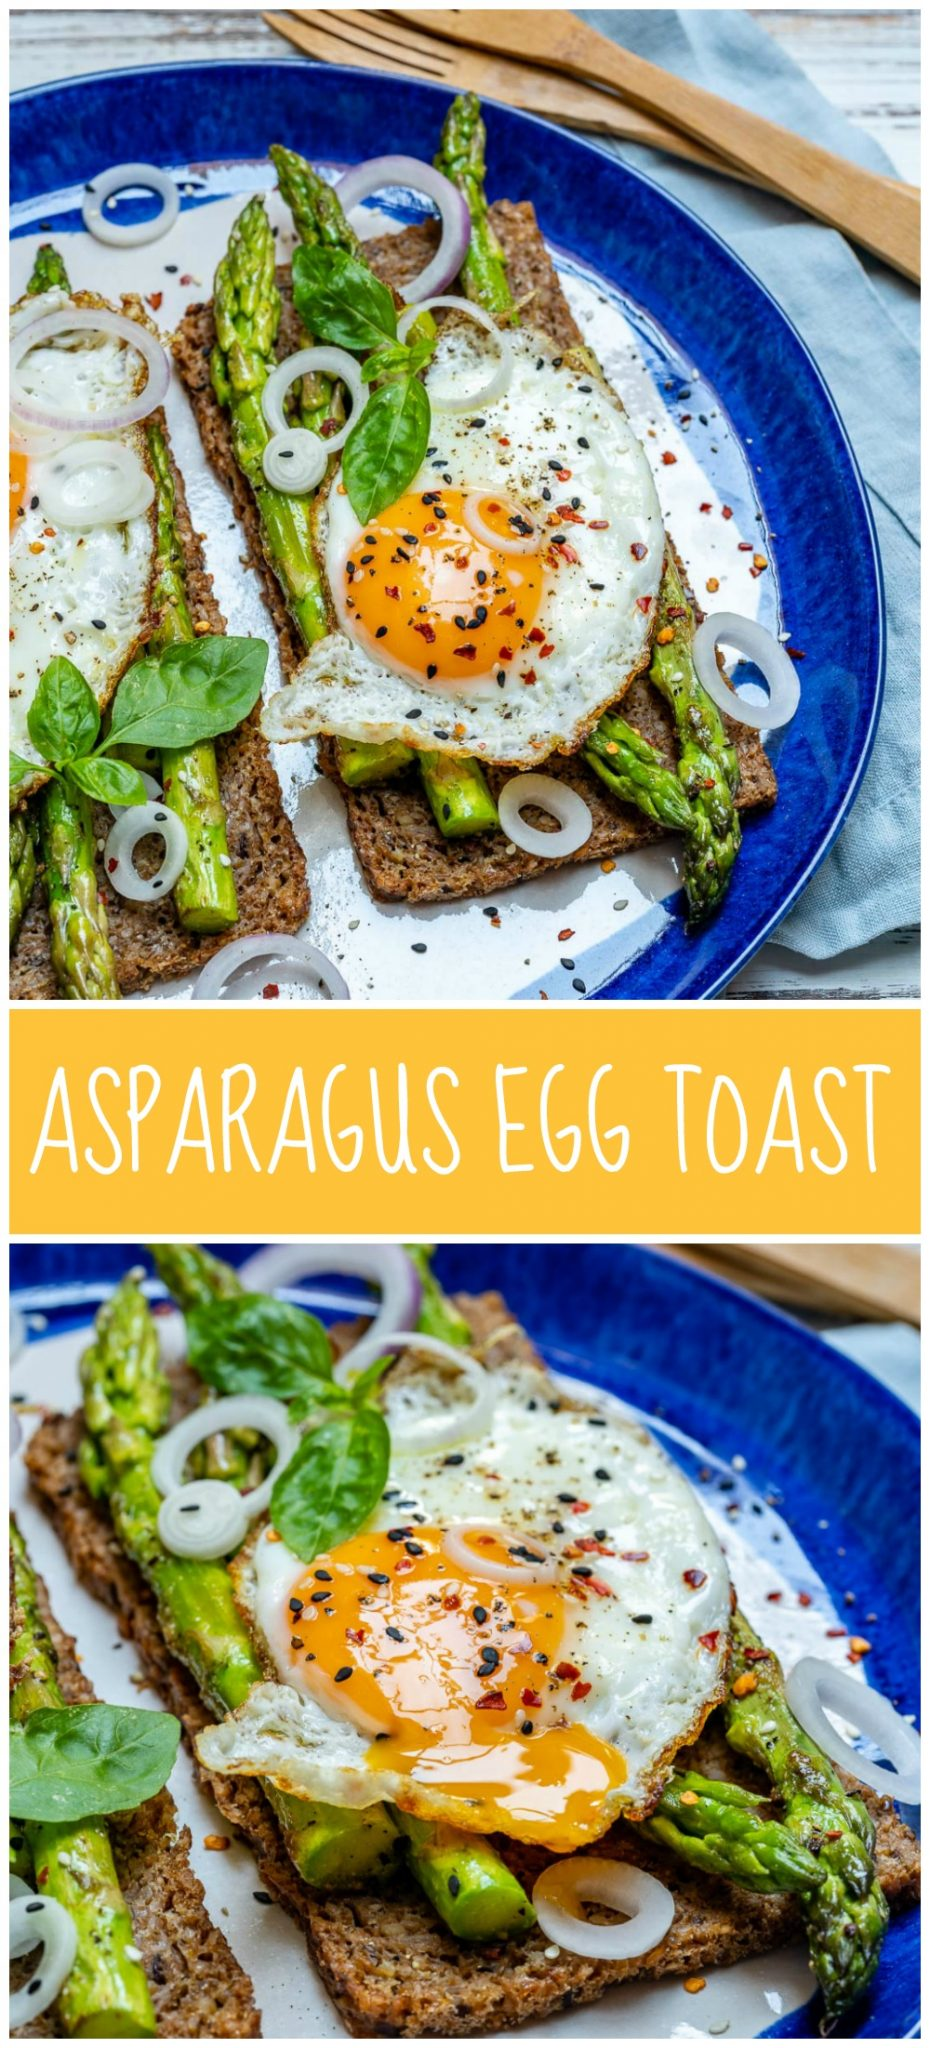 Breakfast Recipes Asparagus Egg Toast